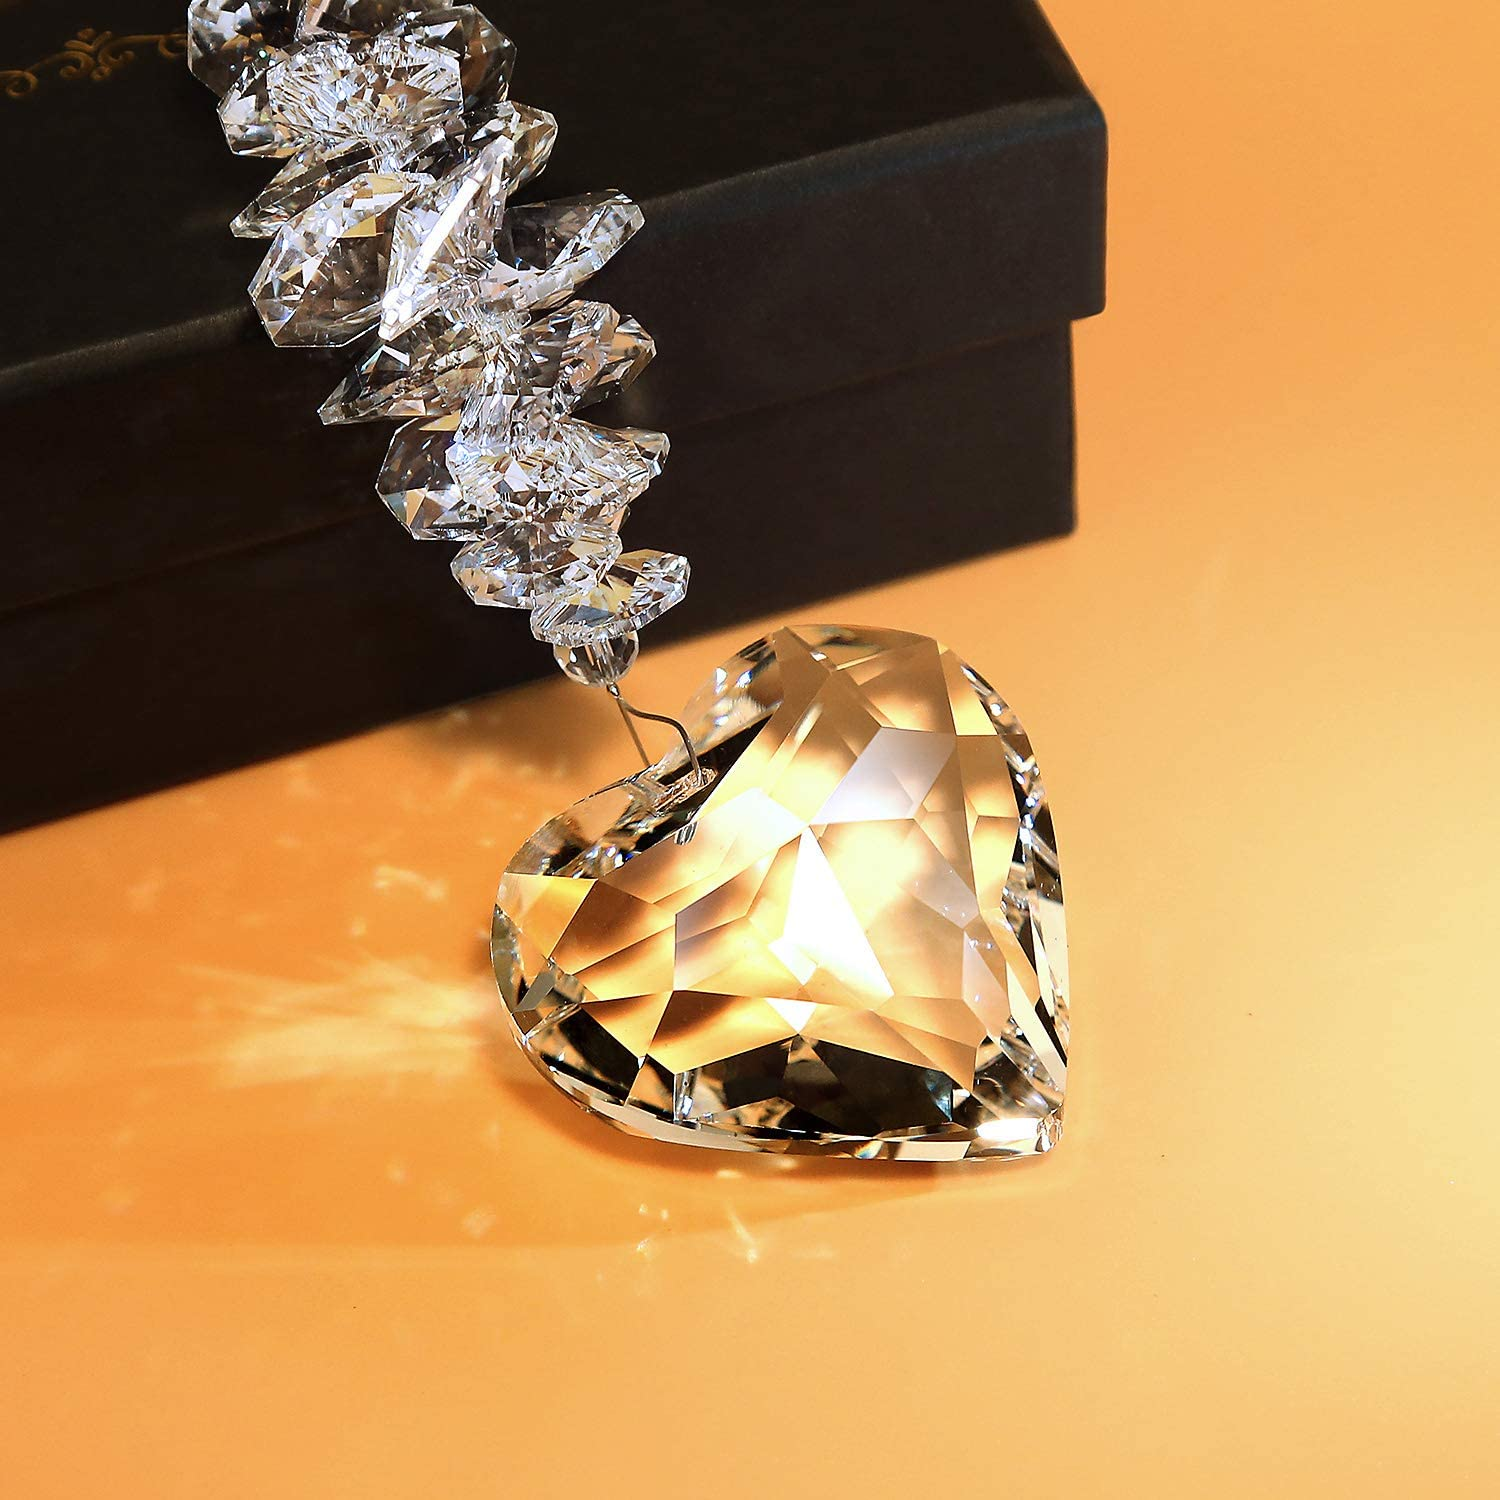 Clear Glass Heart Pendant Crystal Ball Prism Decor